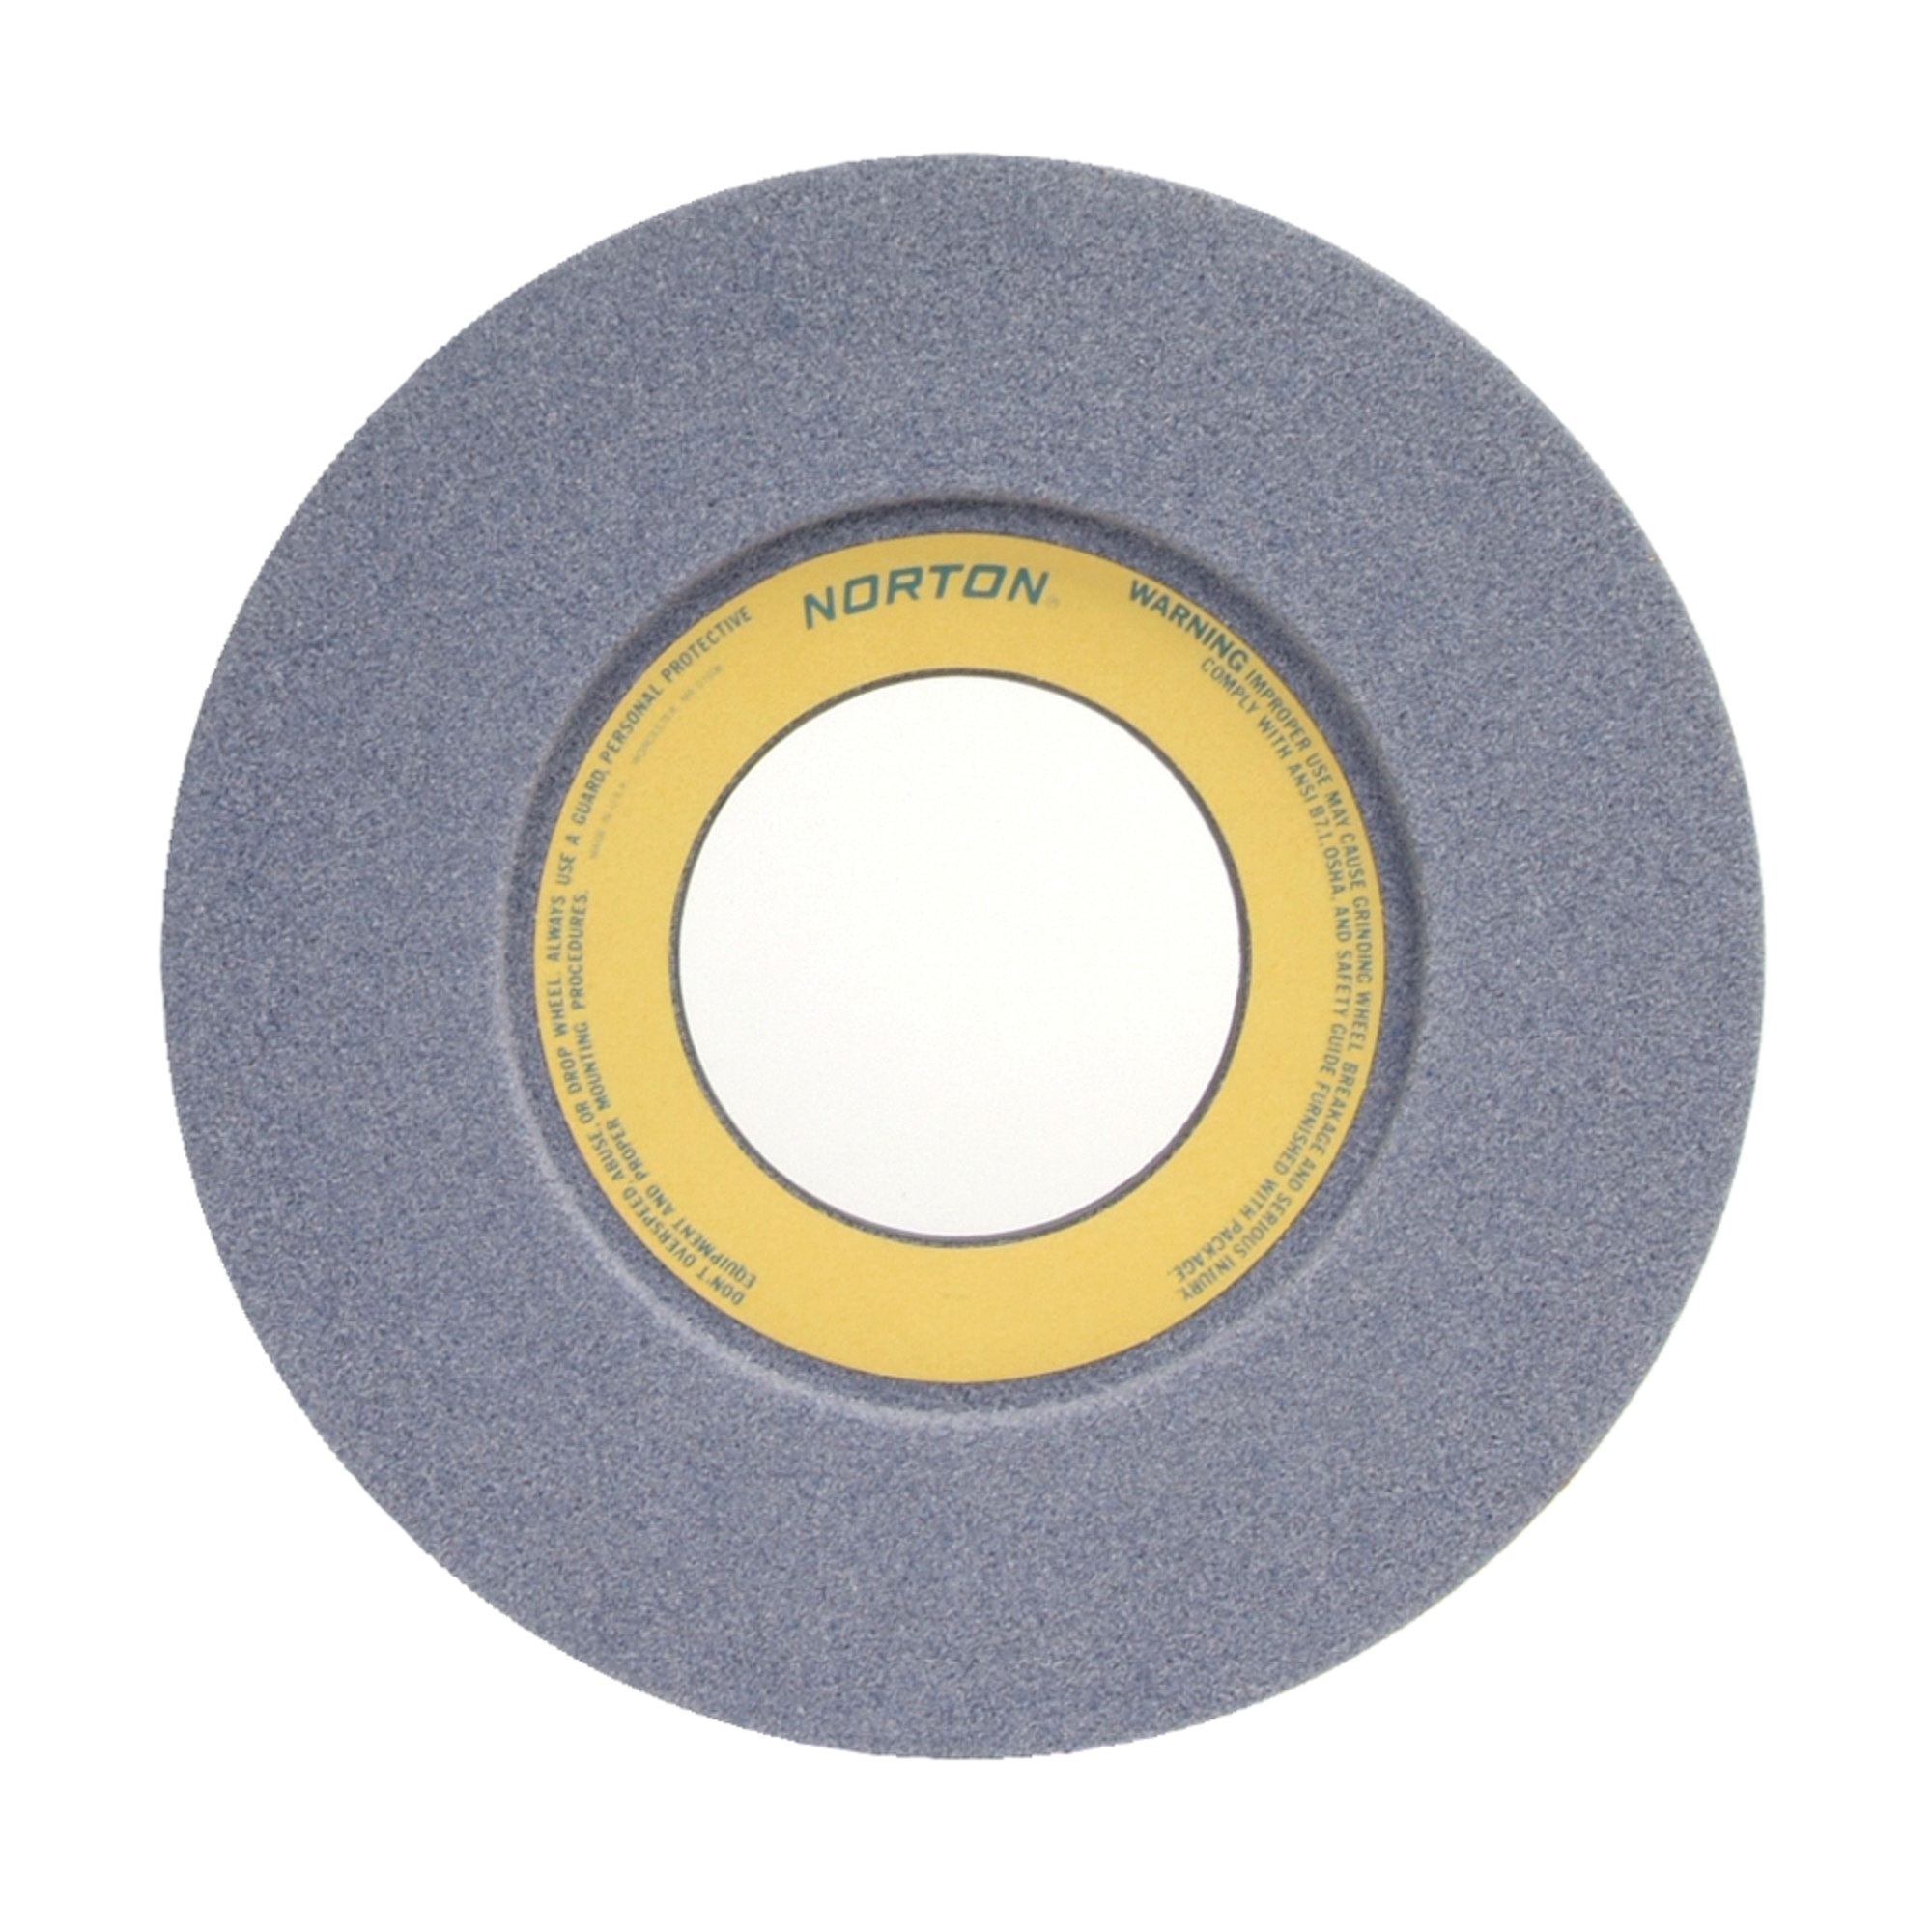 Norton® 66253364362 32A 1-Side Recessed Toolroom Wheel, 14 in Dia x 1-1/2 in THK, 5 in Center Hole, 46 Grit, Aluminum Oxide Abrasive